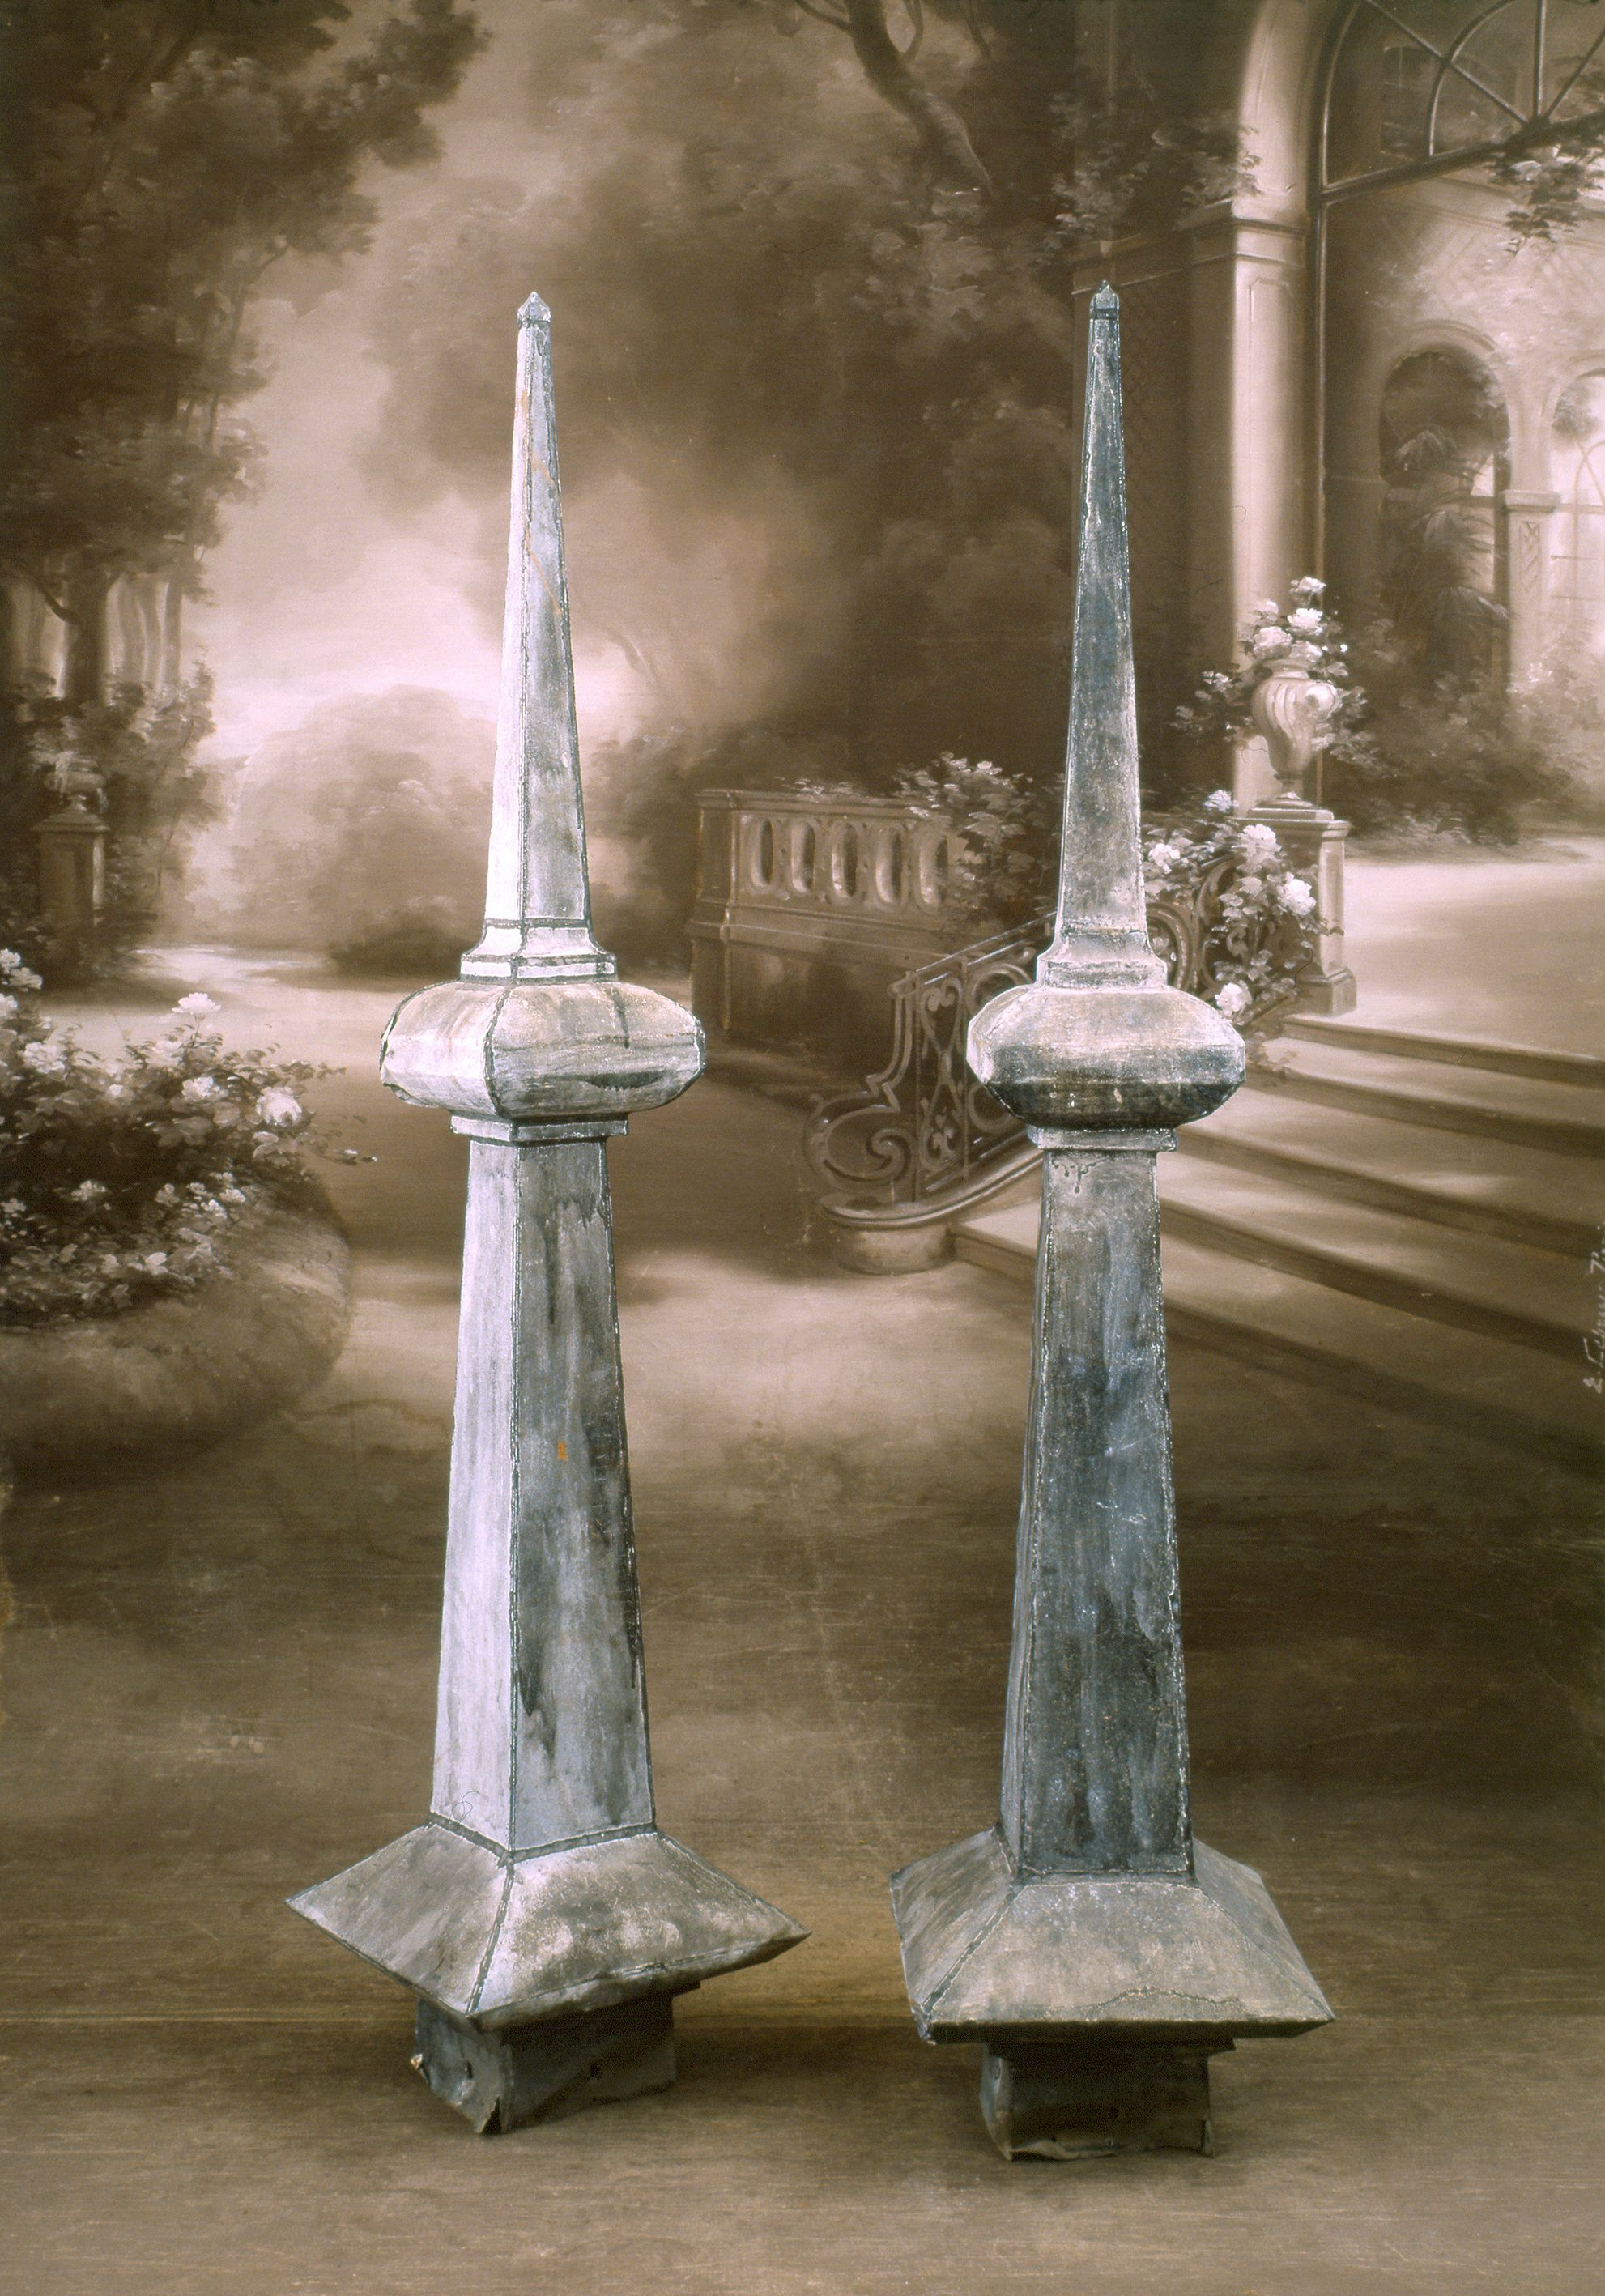 Tall French Zinc Roof Finials Appley Appleyhoare Com